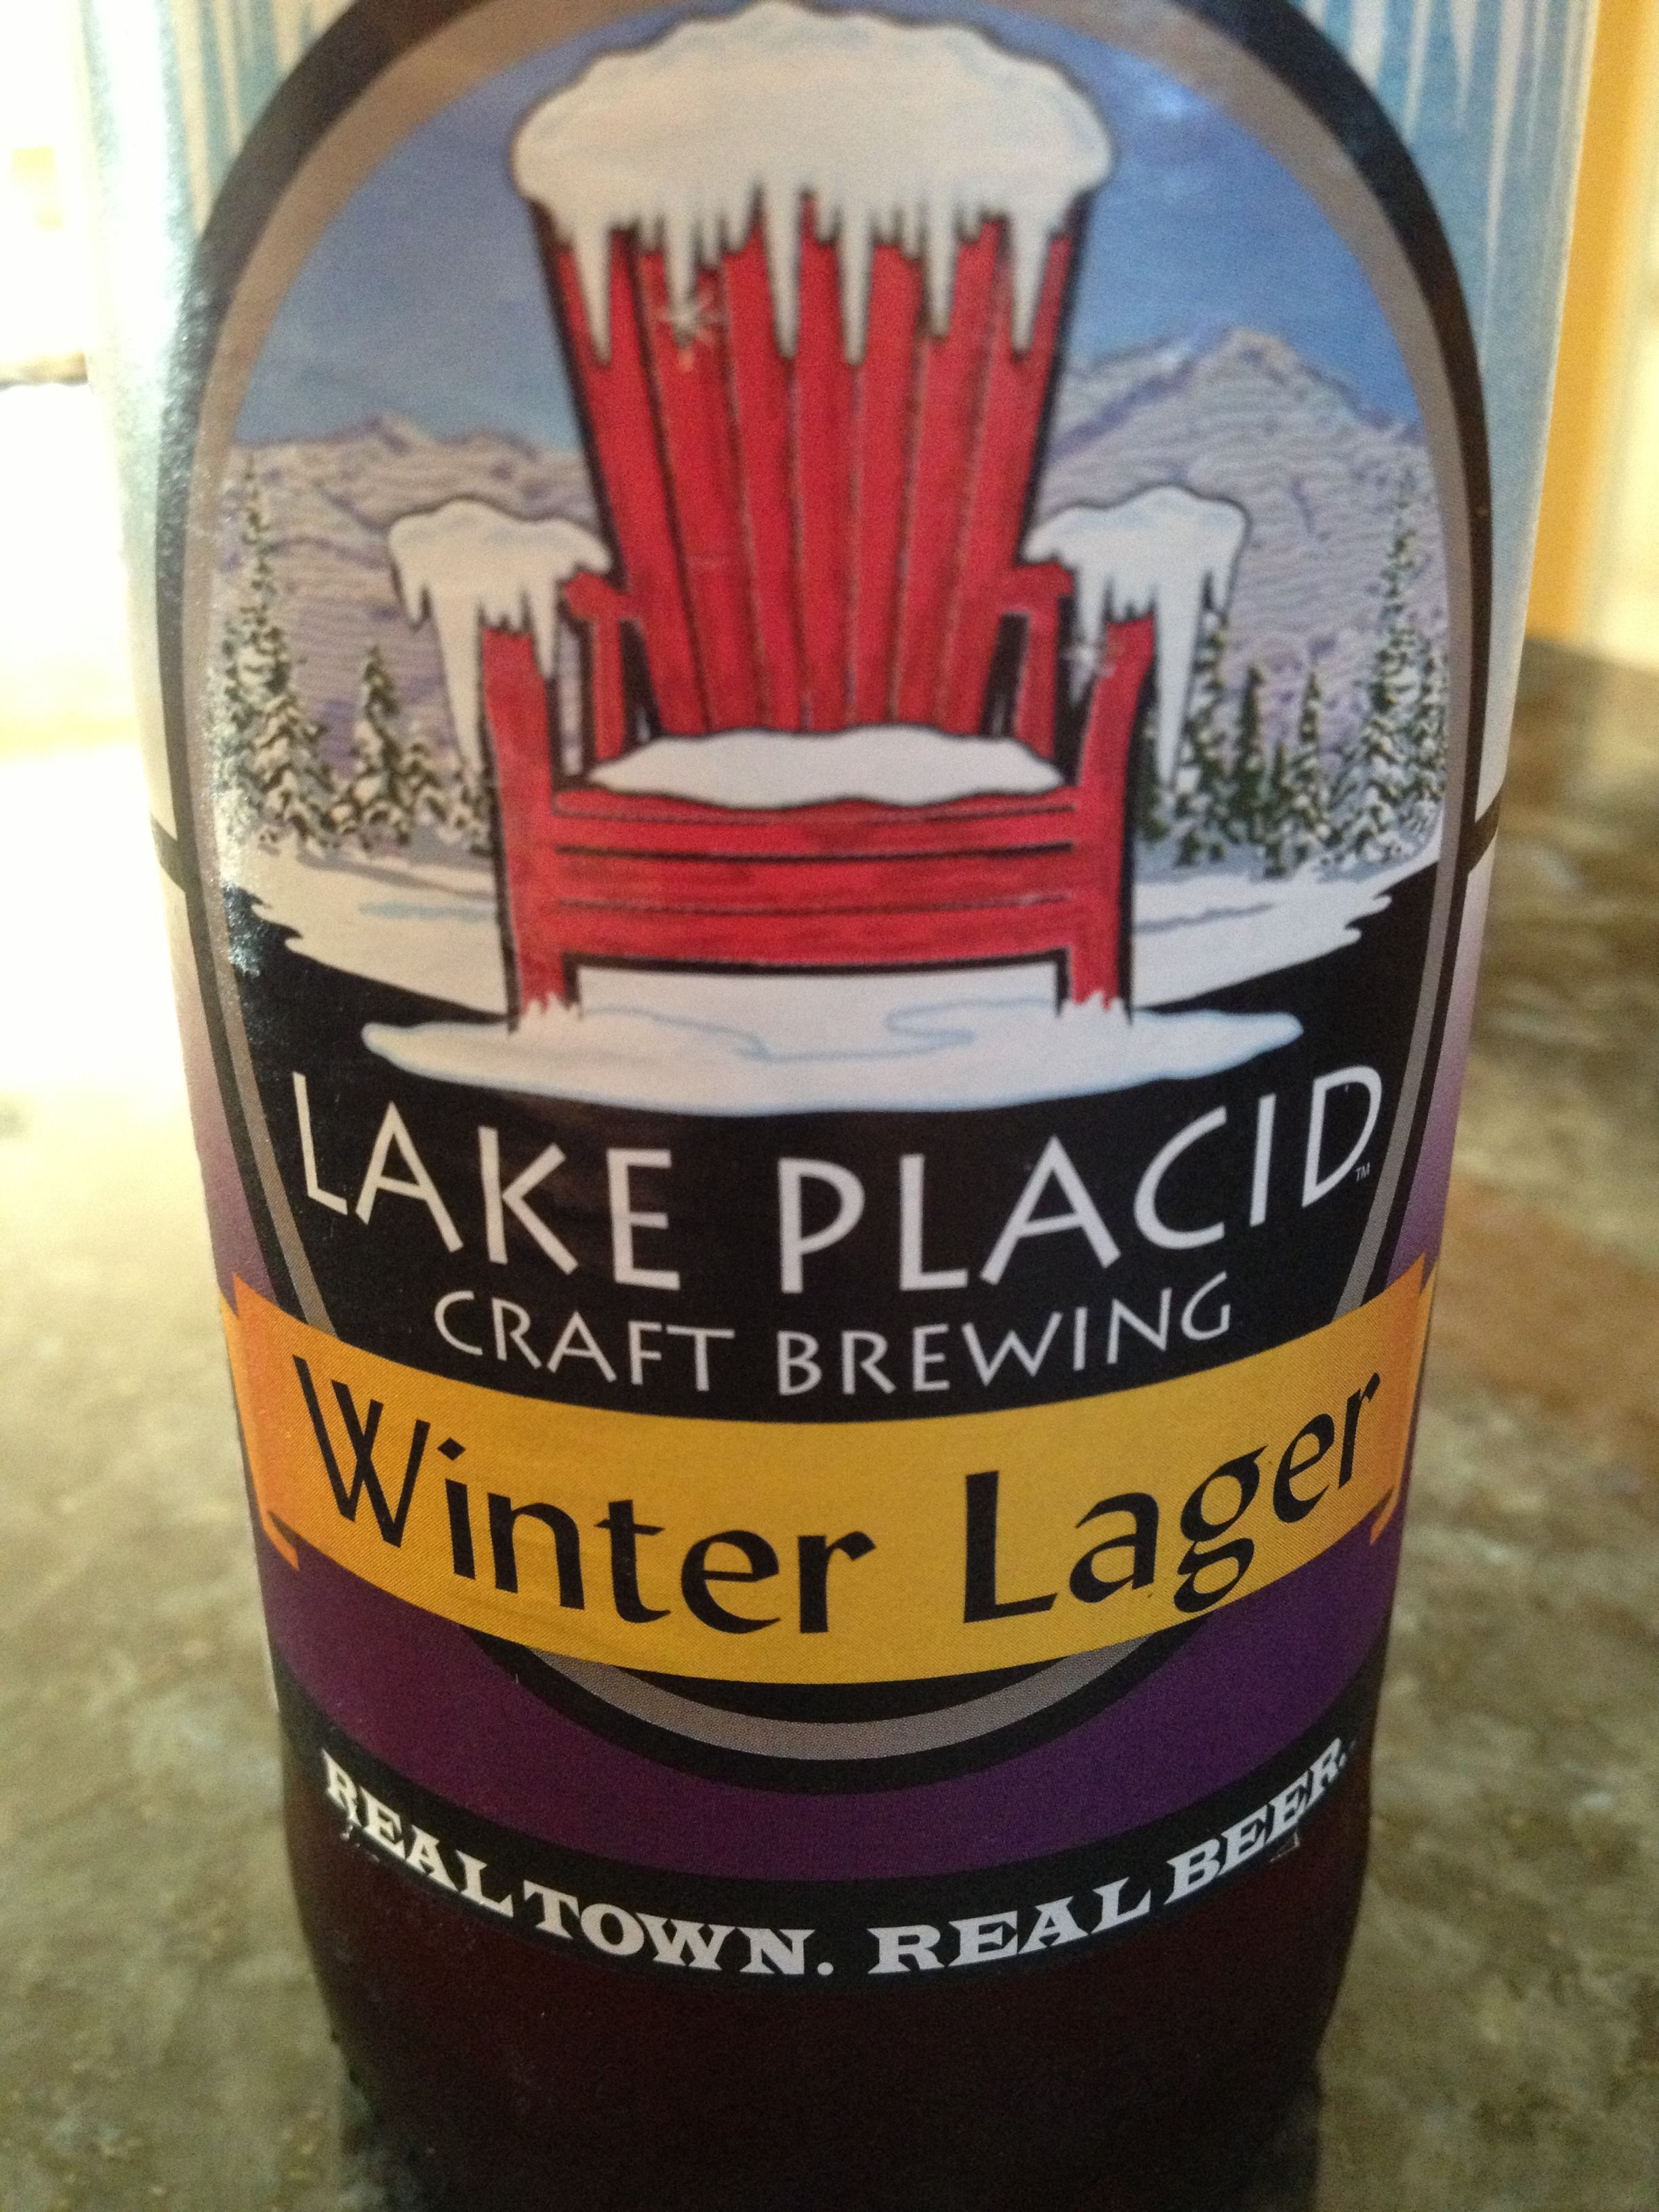 Lake Placid Craft Brewery Winter Lager Craft Brewing Craft Brewery Gold Peak Tea Bottle